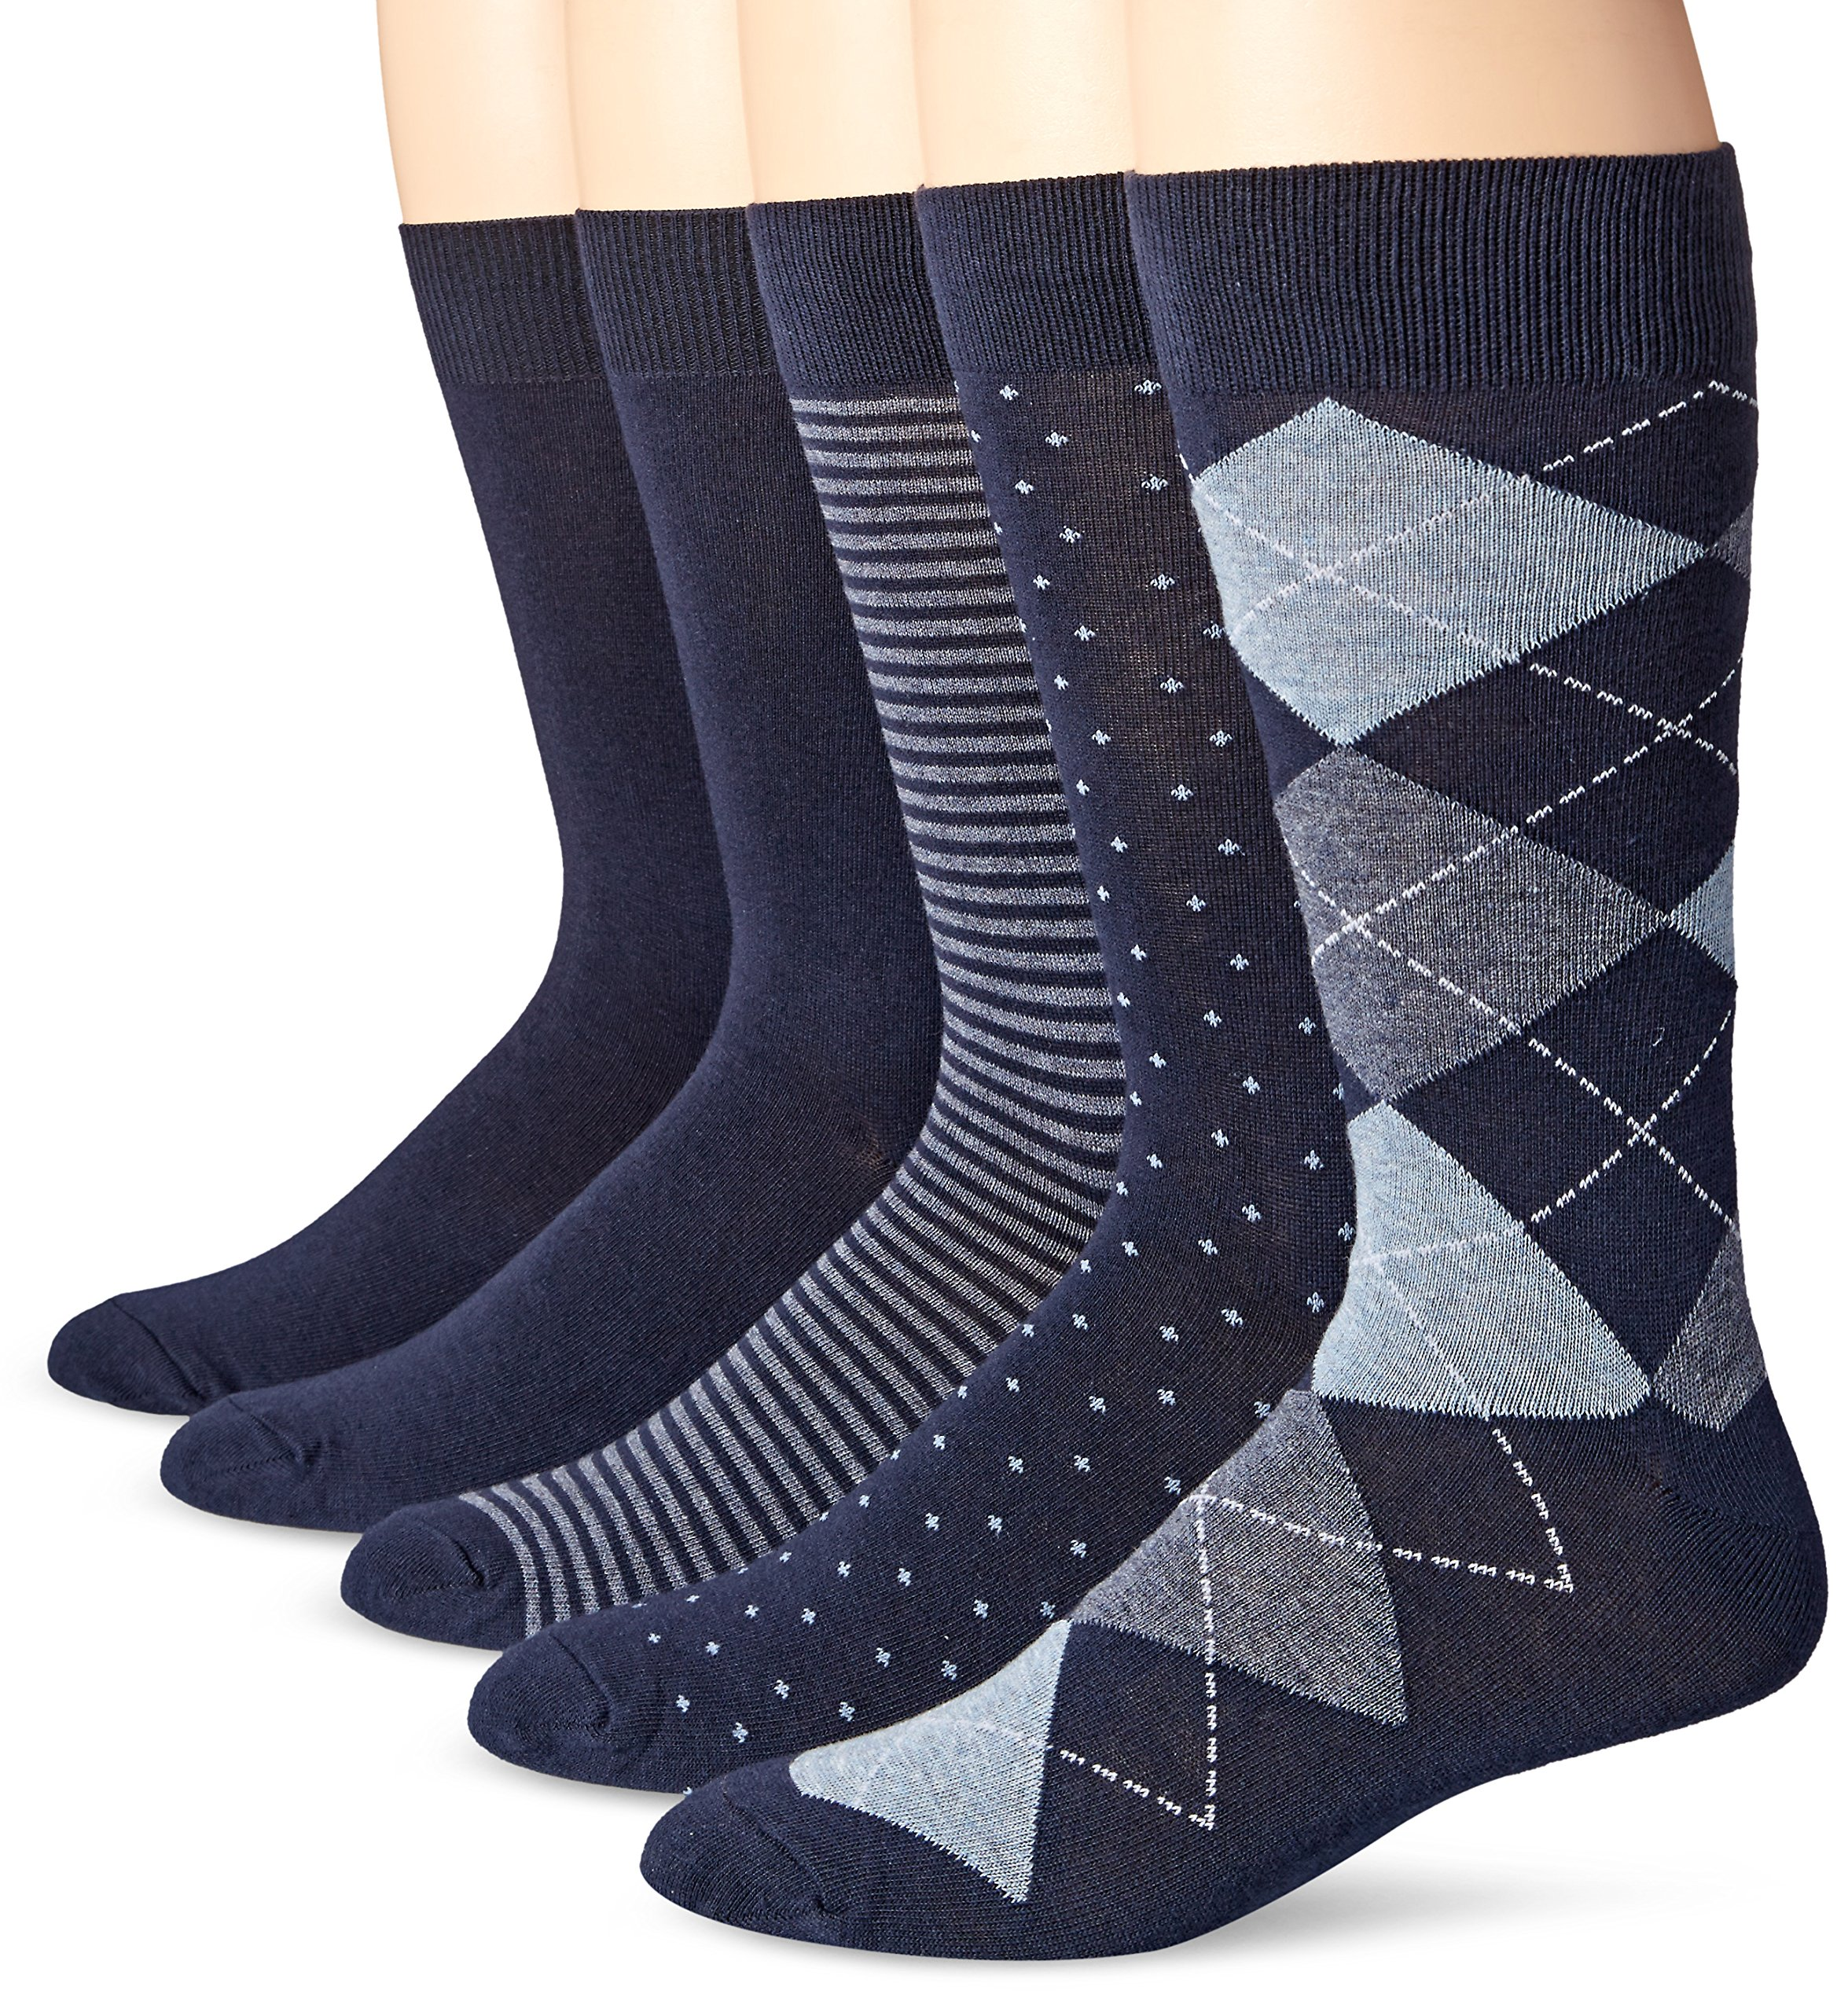 Amazon Essentials Men's 5-Pack Patterned Dress Socks, Assorted Navy, Shoe Size: 8-12 by Amazon Essentials